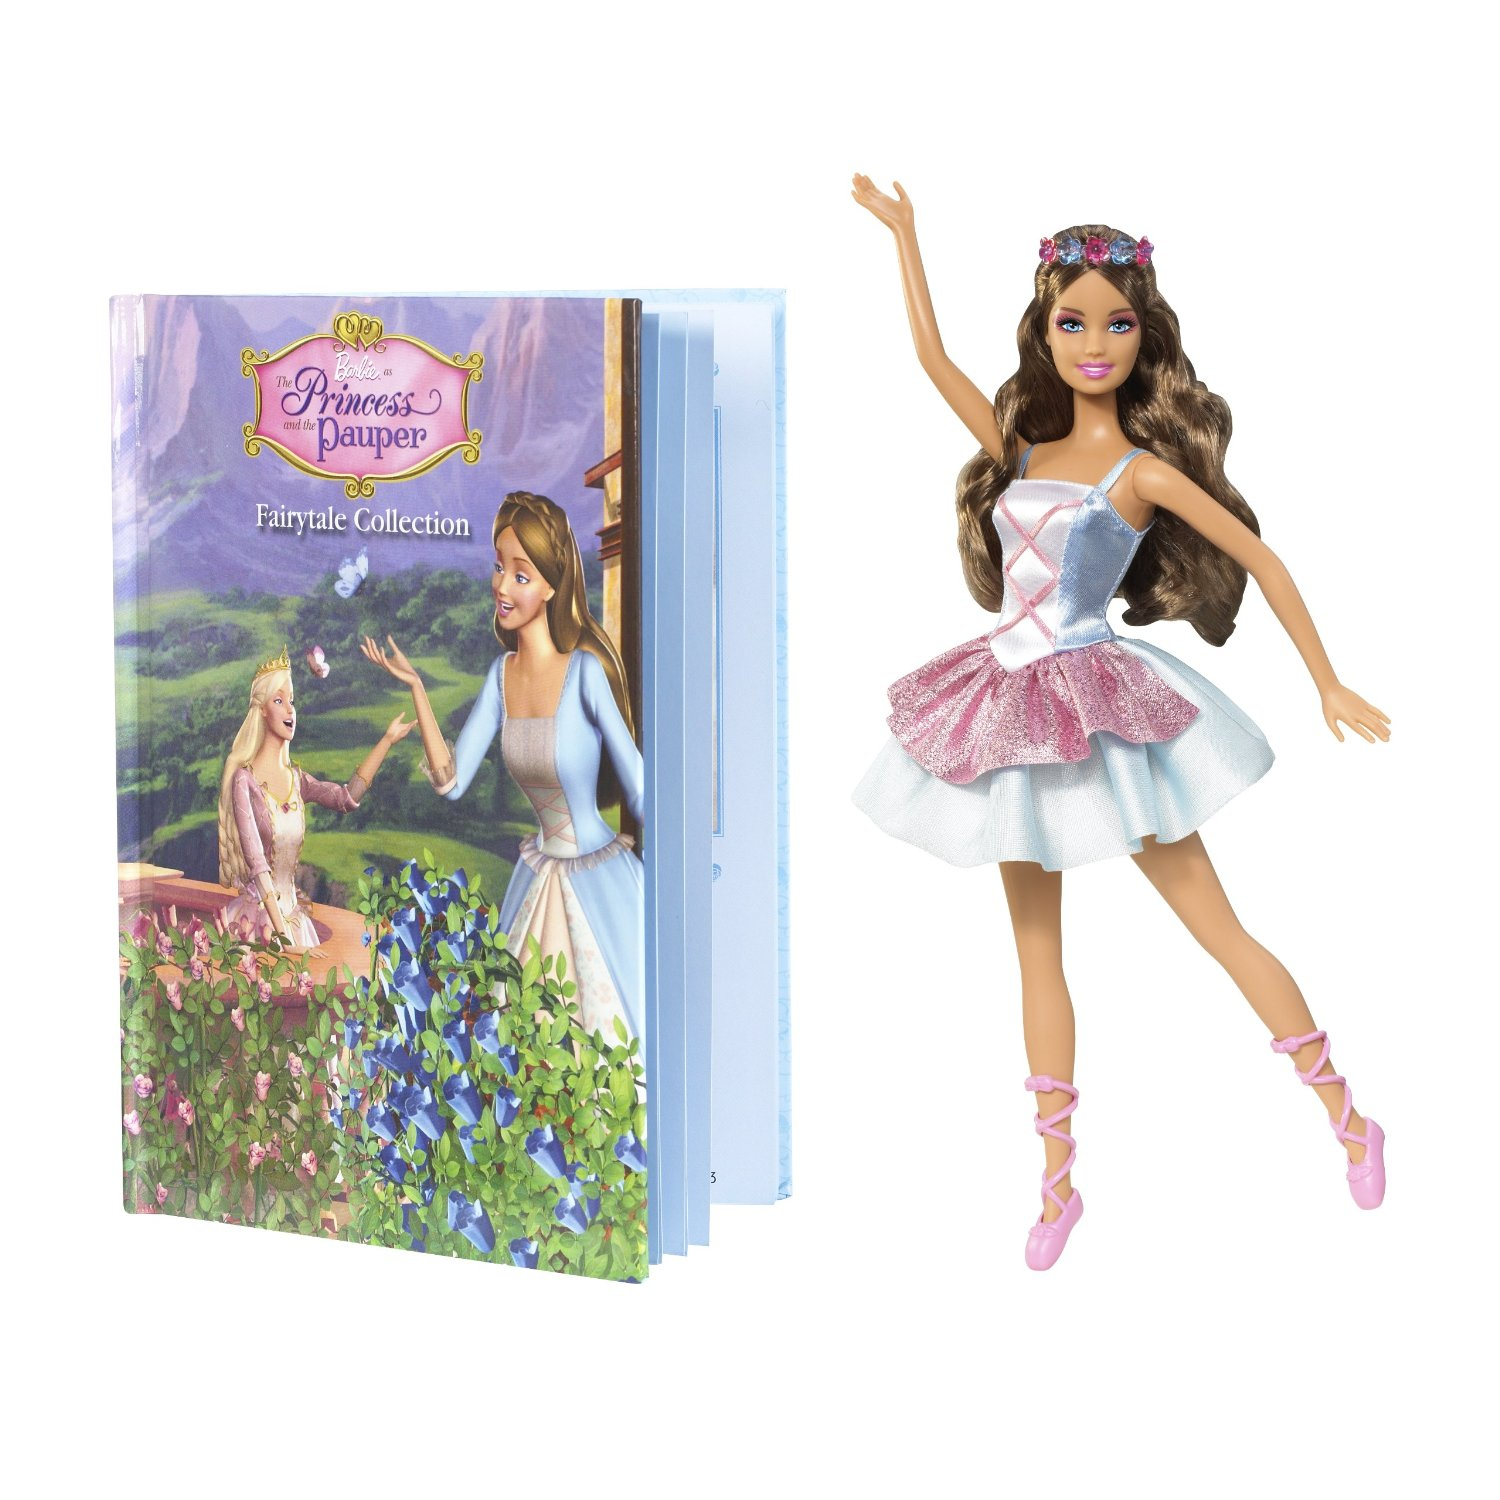 Barbie as the Princess and The Pauper: Erika doll and Book Giftset